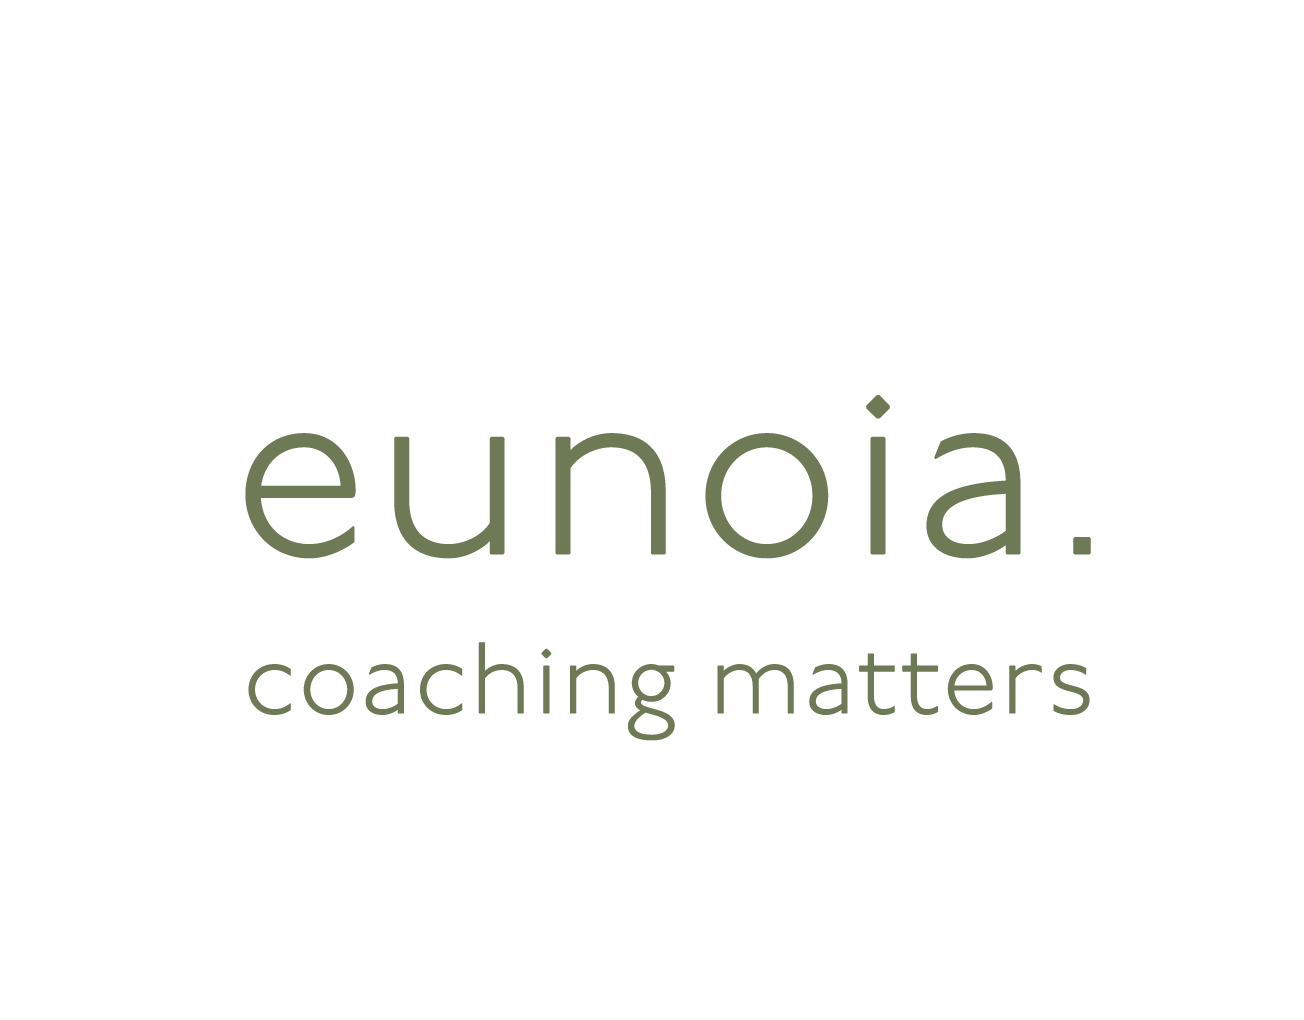 Eunoia Coaching